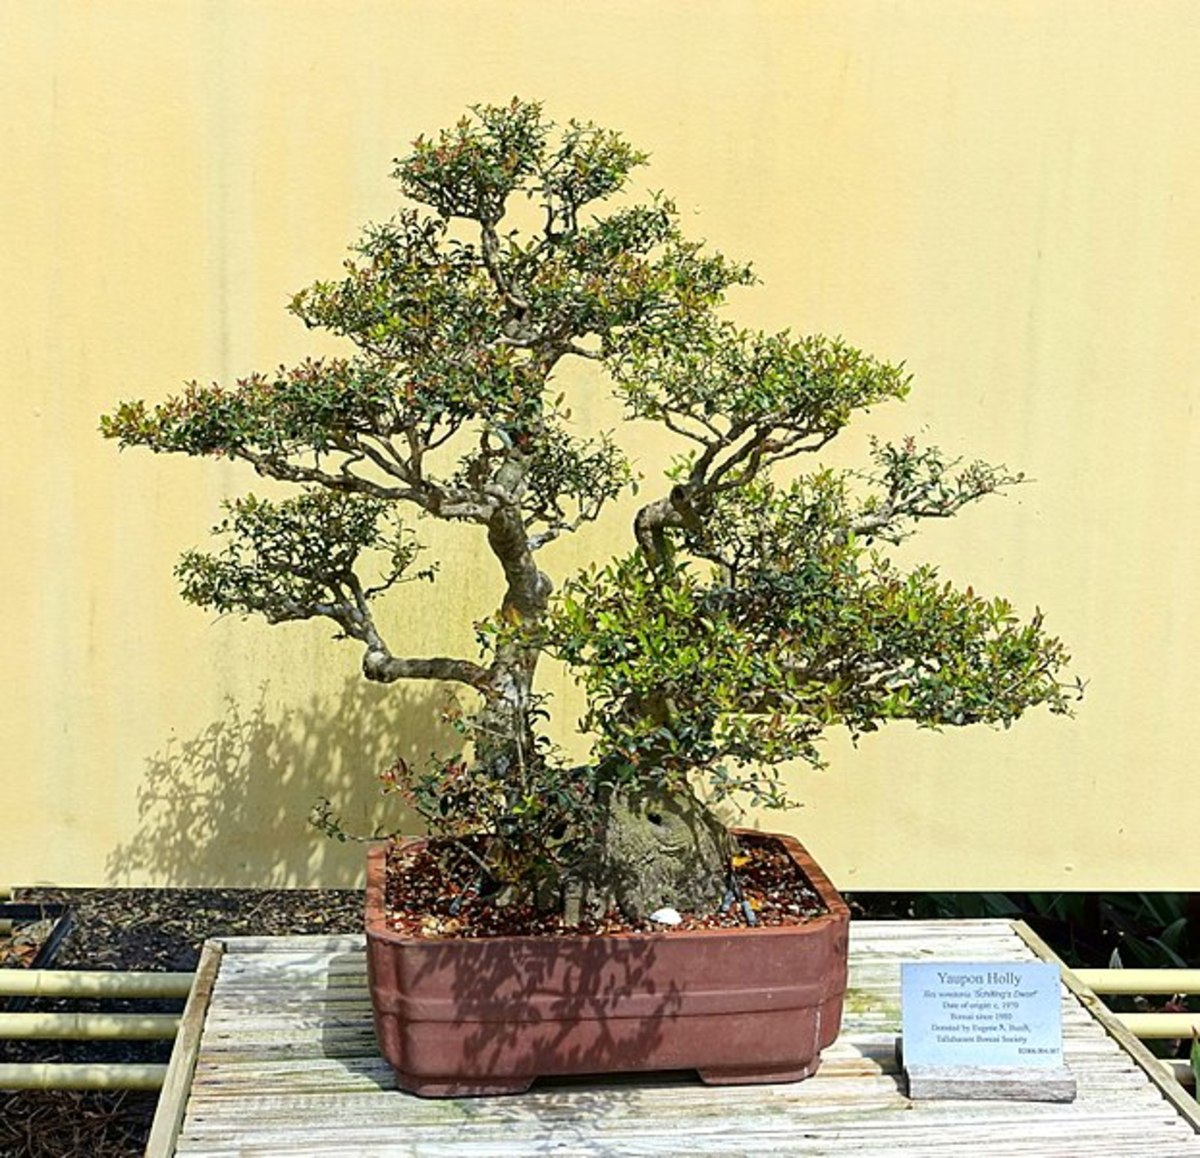 A beautiful bonsai version of the dwarf variety of yaupon holly.